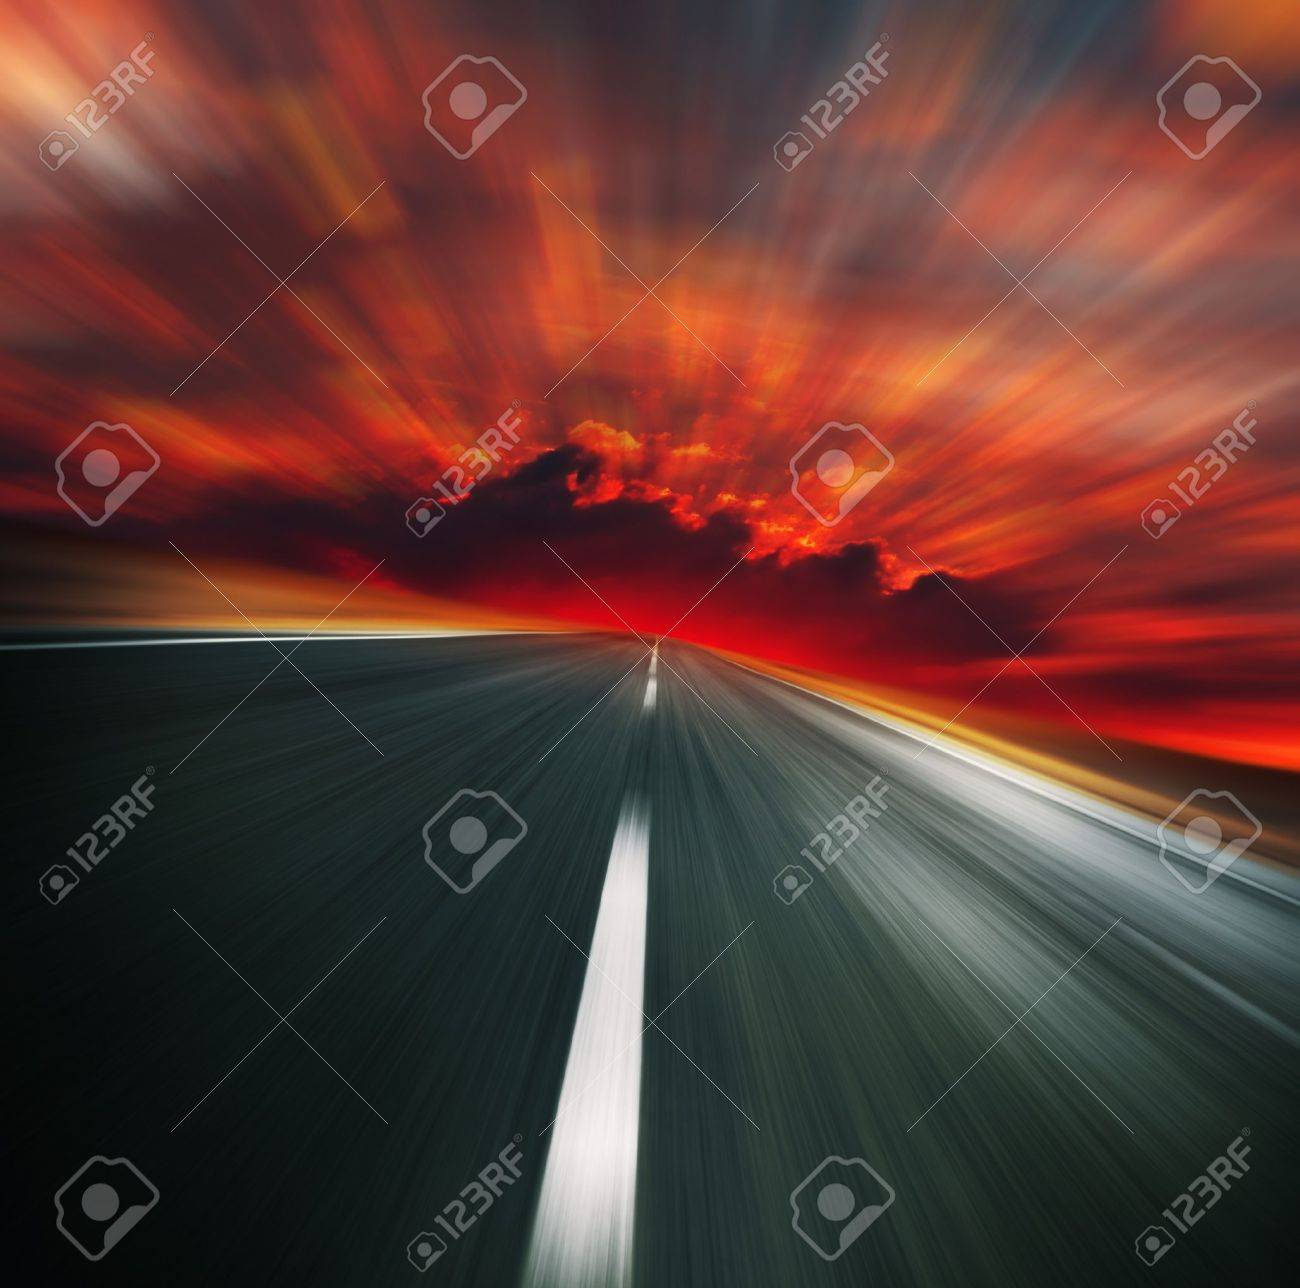 Blurred asphalt road and red bloody blurred sky Stock Photo - 7600095